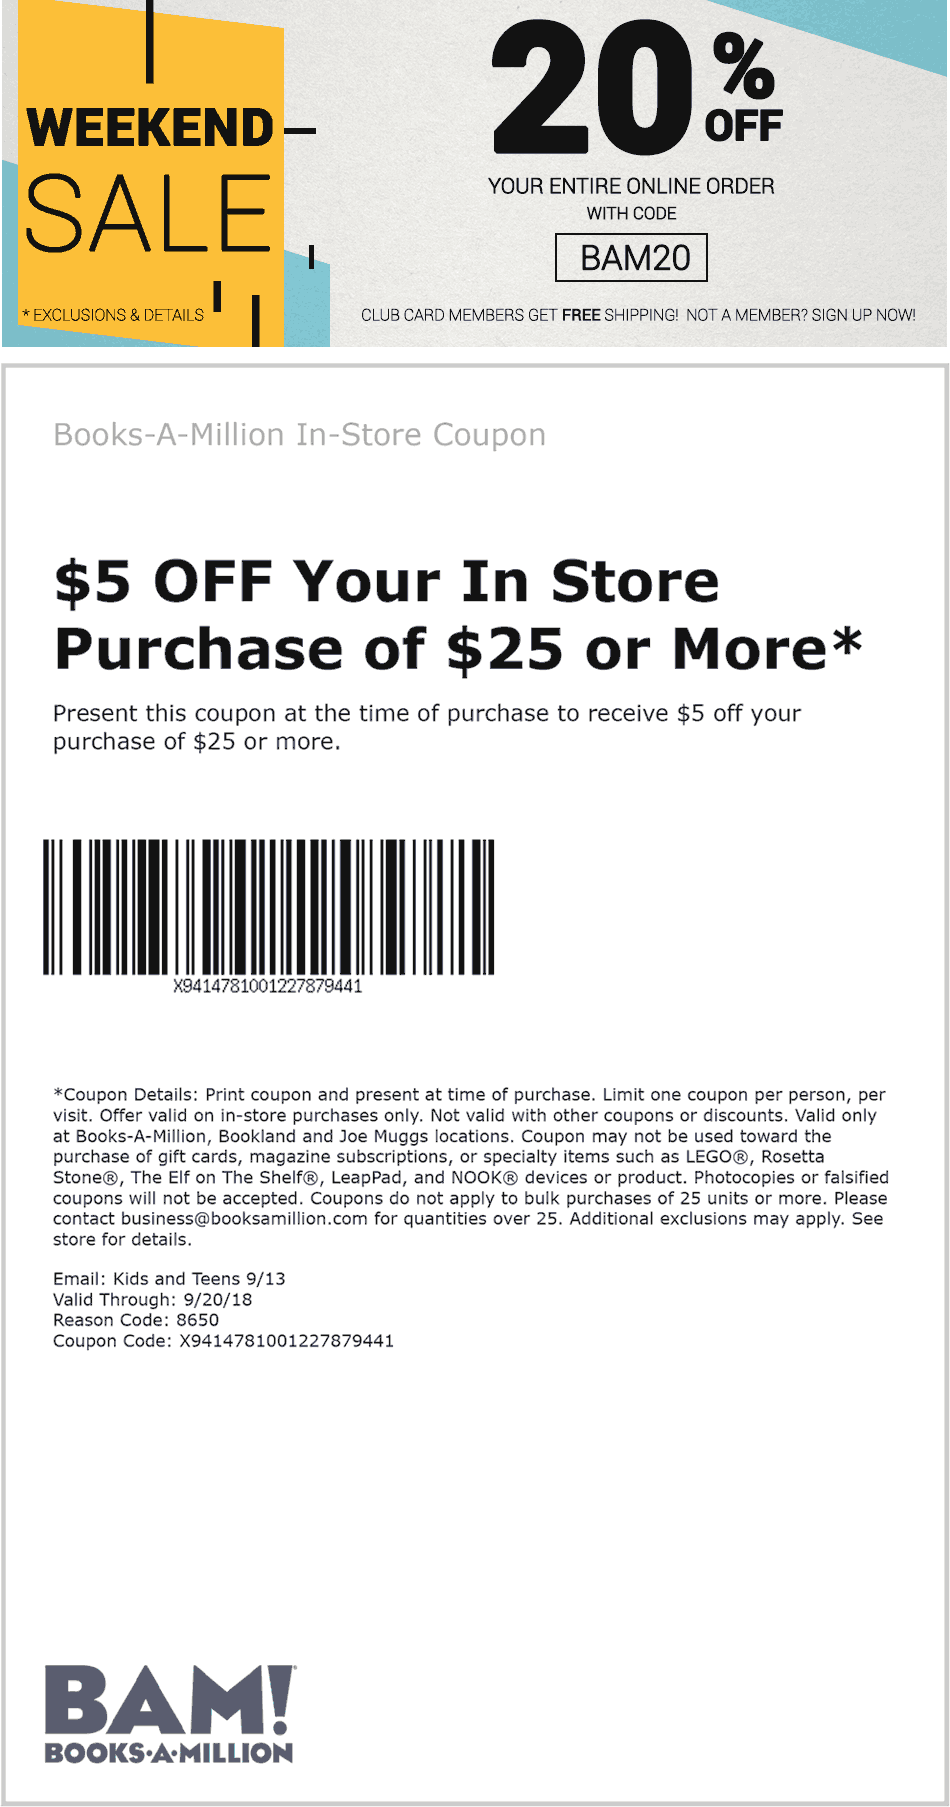 Books-A-Million Coupon July 2019 $5 off $25 at Books-A-Million, or 20% off online via promo code BAM20